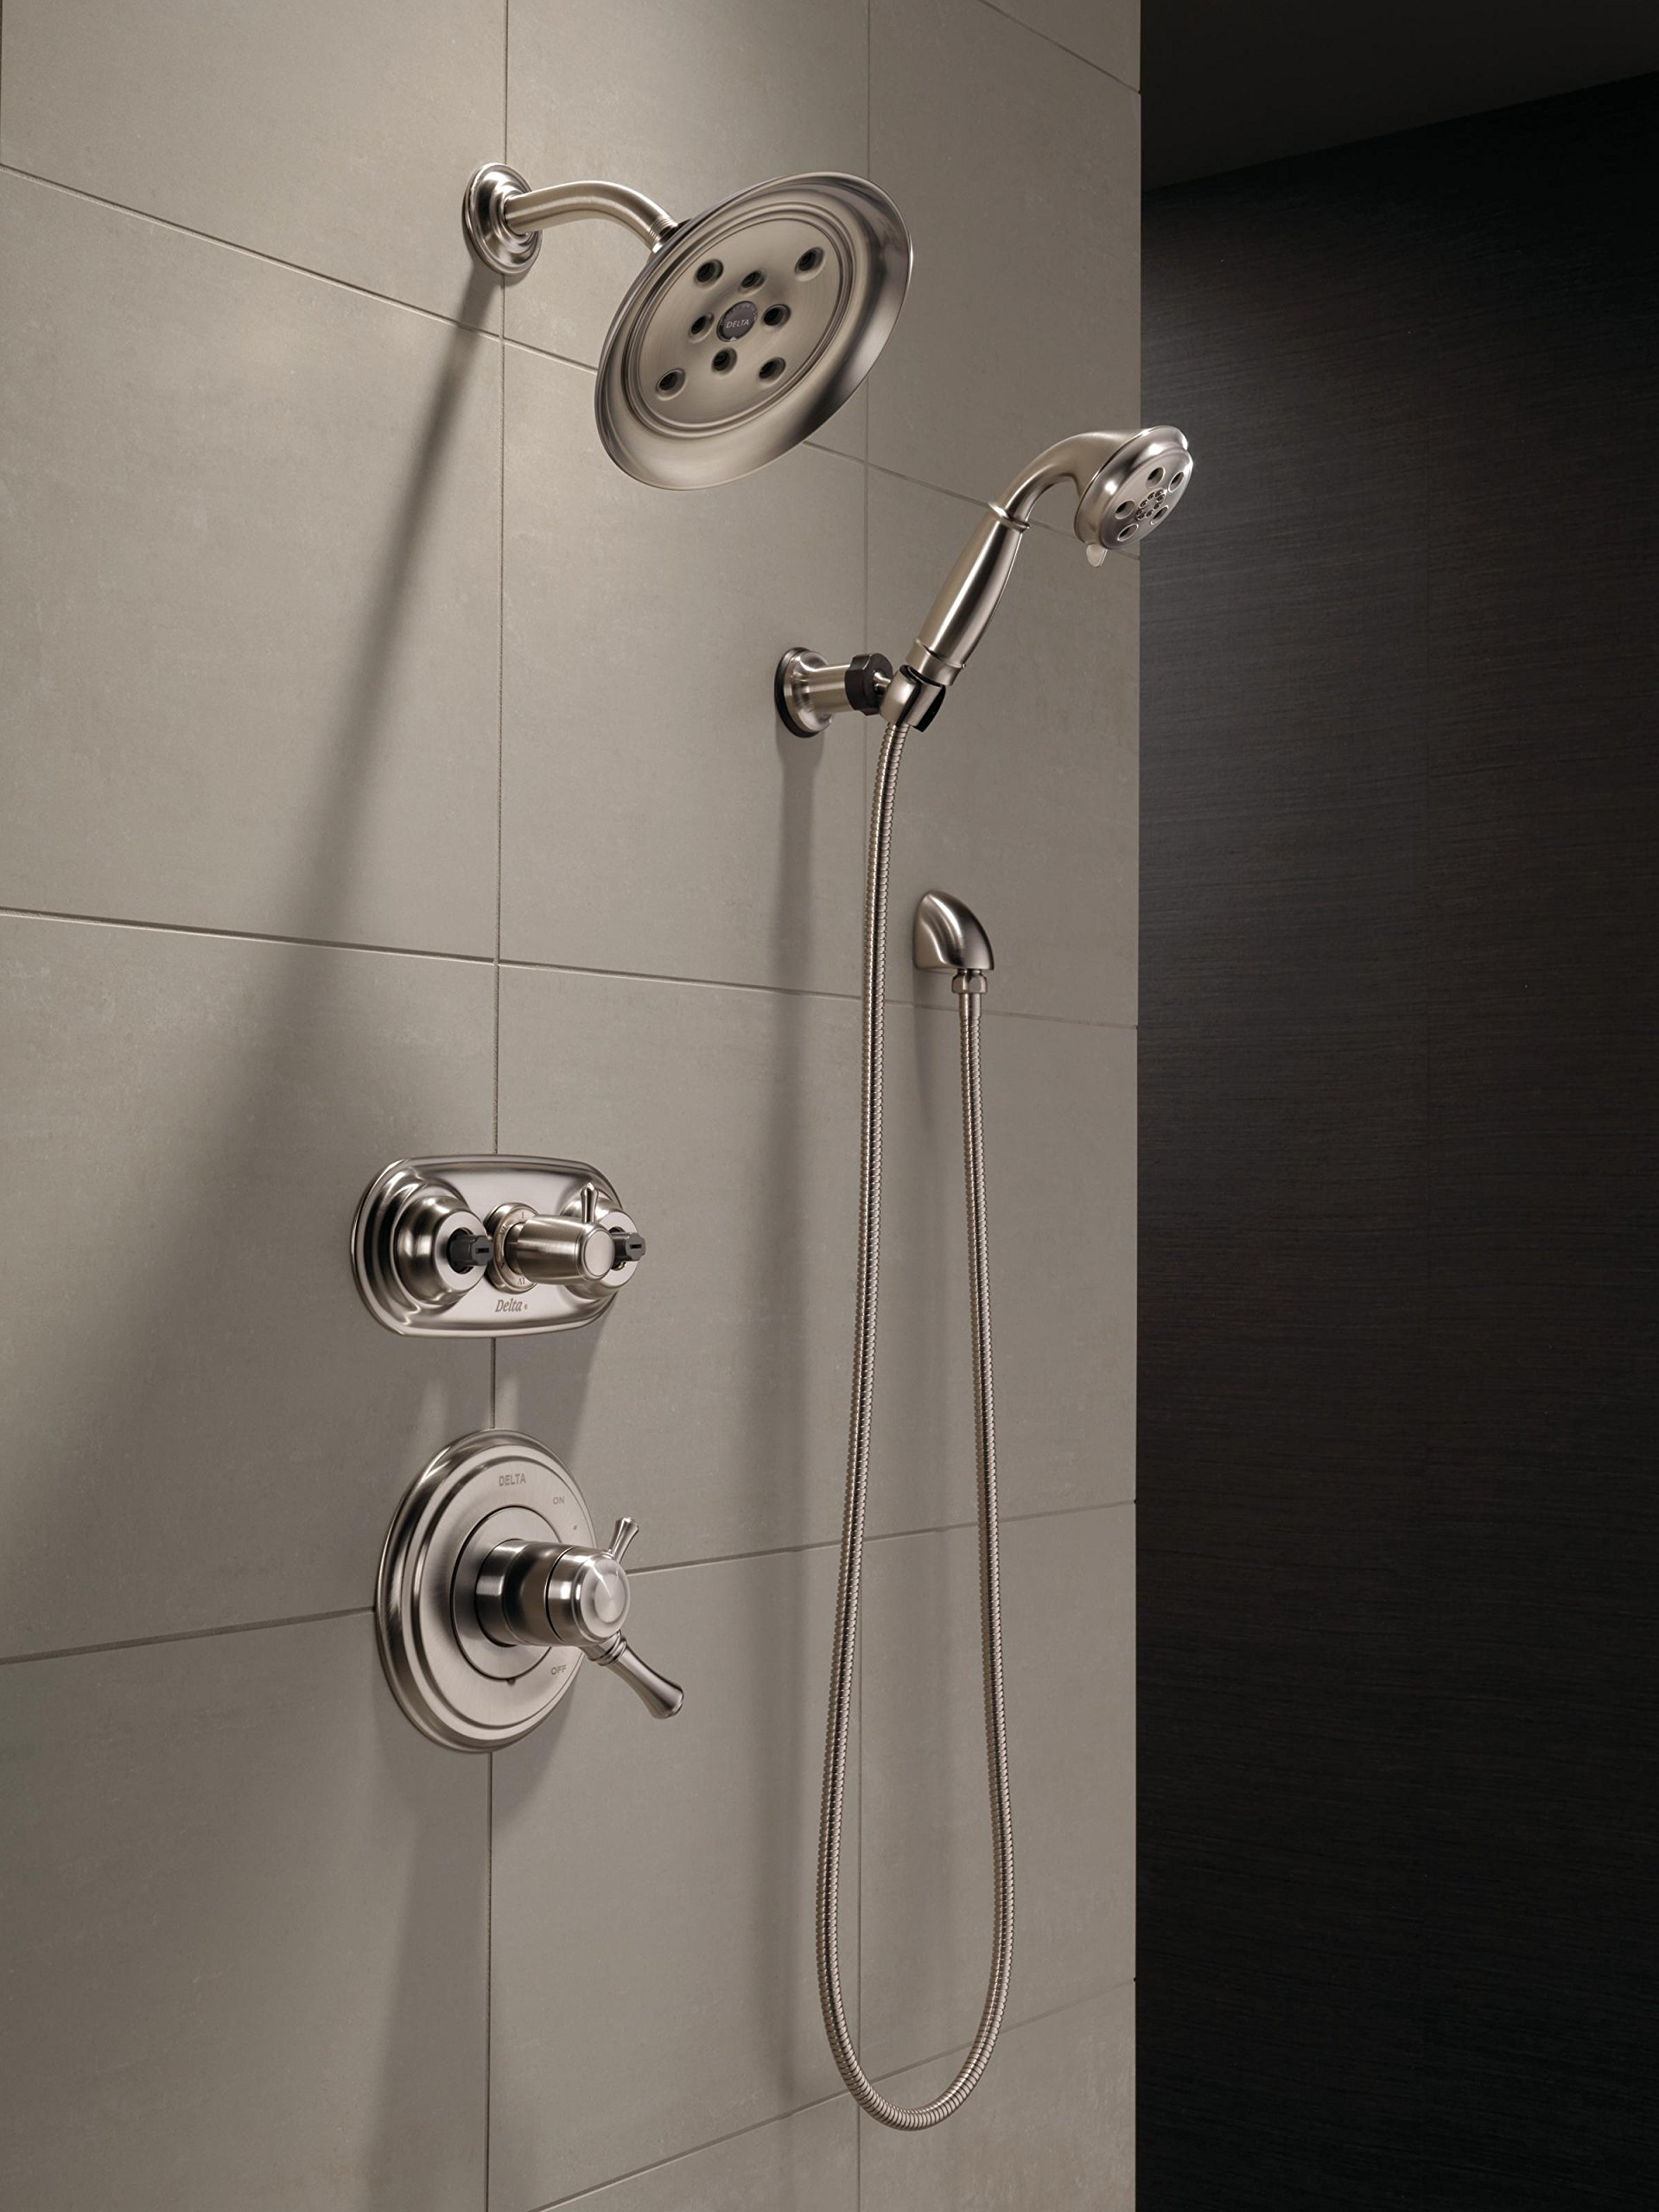 Delta Faucet Cassidy 17 Series Dual-Function Shower Handle Valve Trim Kit, Chrome T17097 (Valve Not Included) by DELTA FAUCET (Image #1)